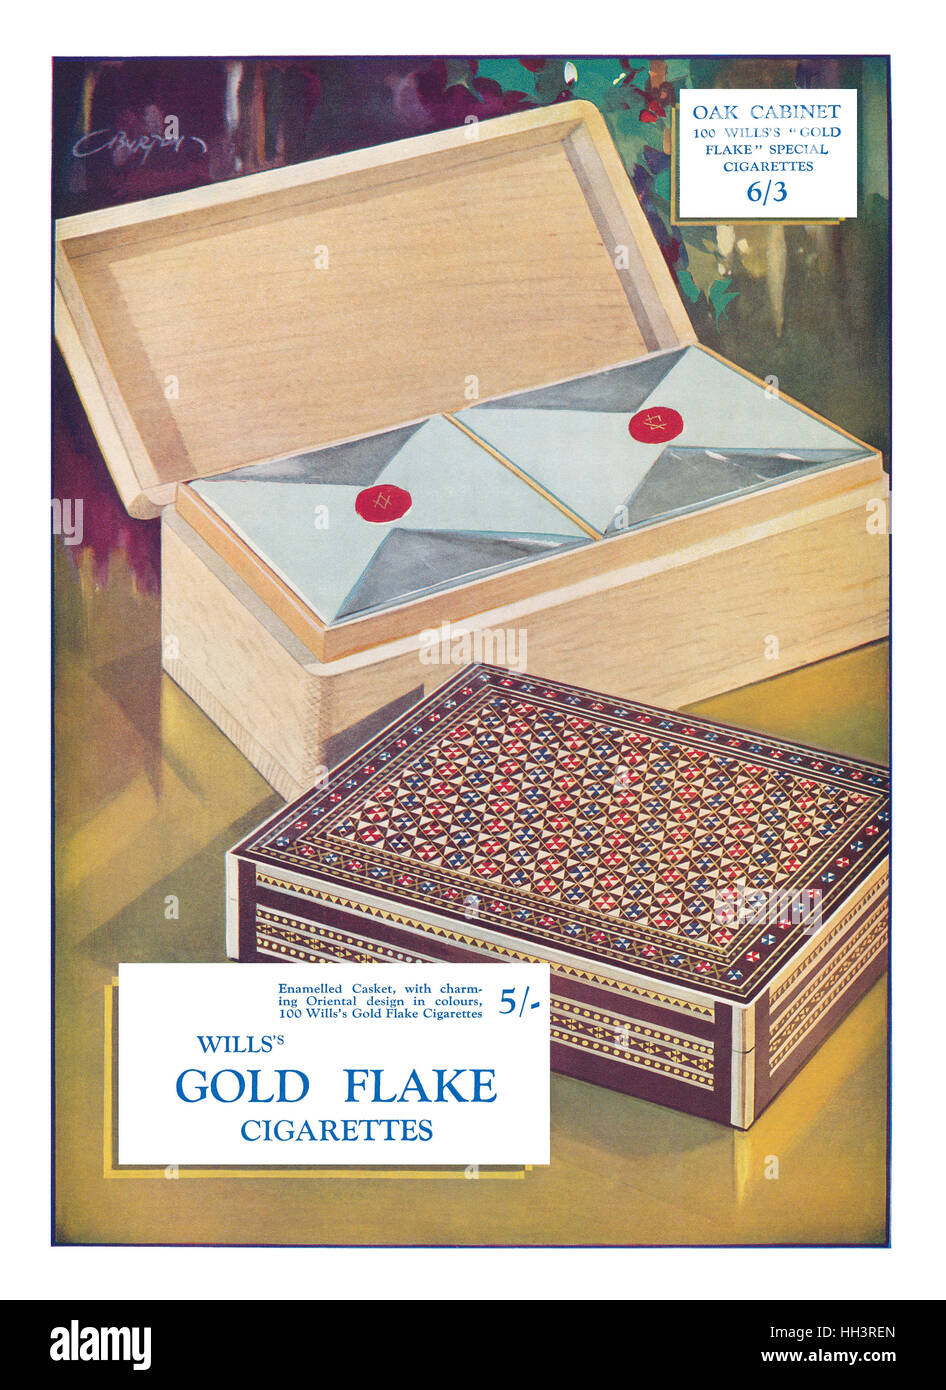 1928 British advertisement for Wills's Gold Flake Cigarettes - Stock Image